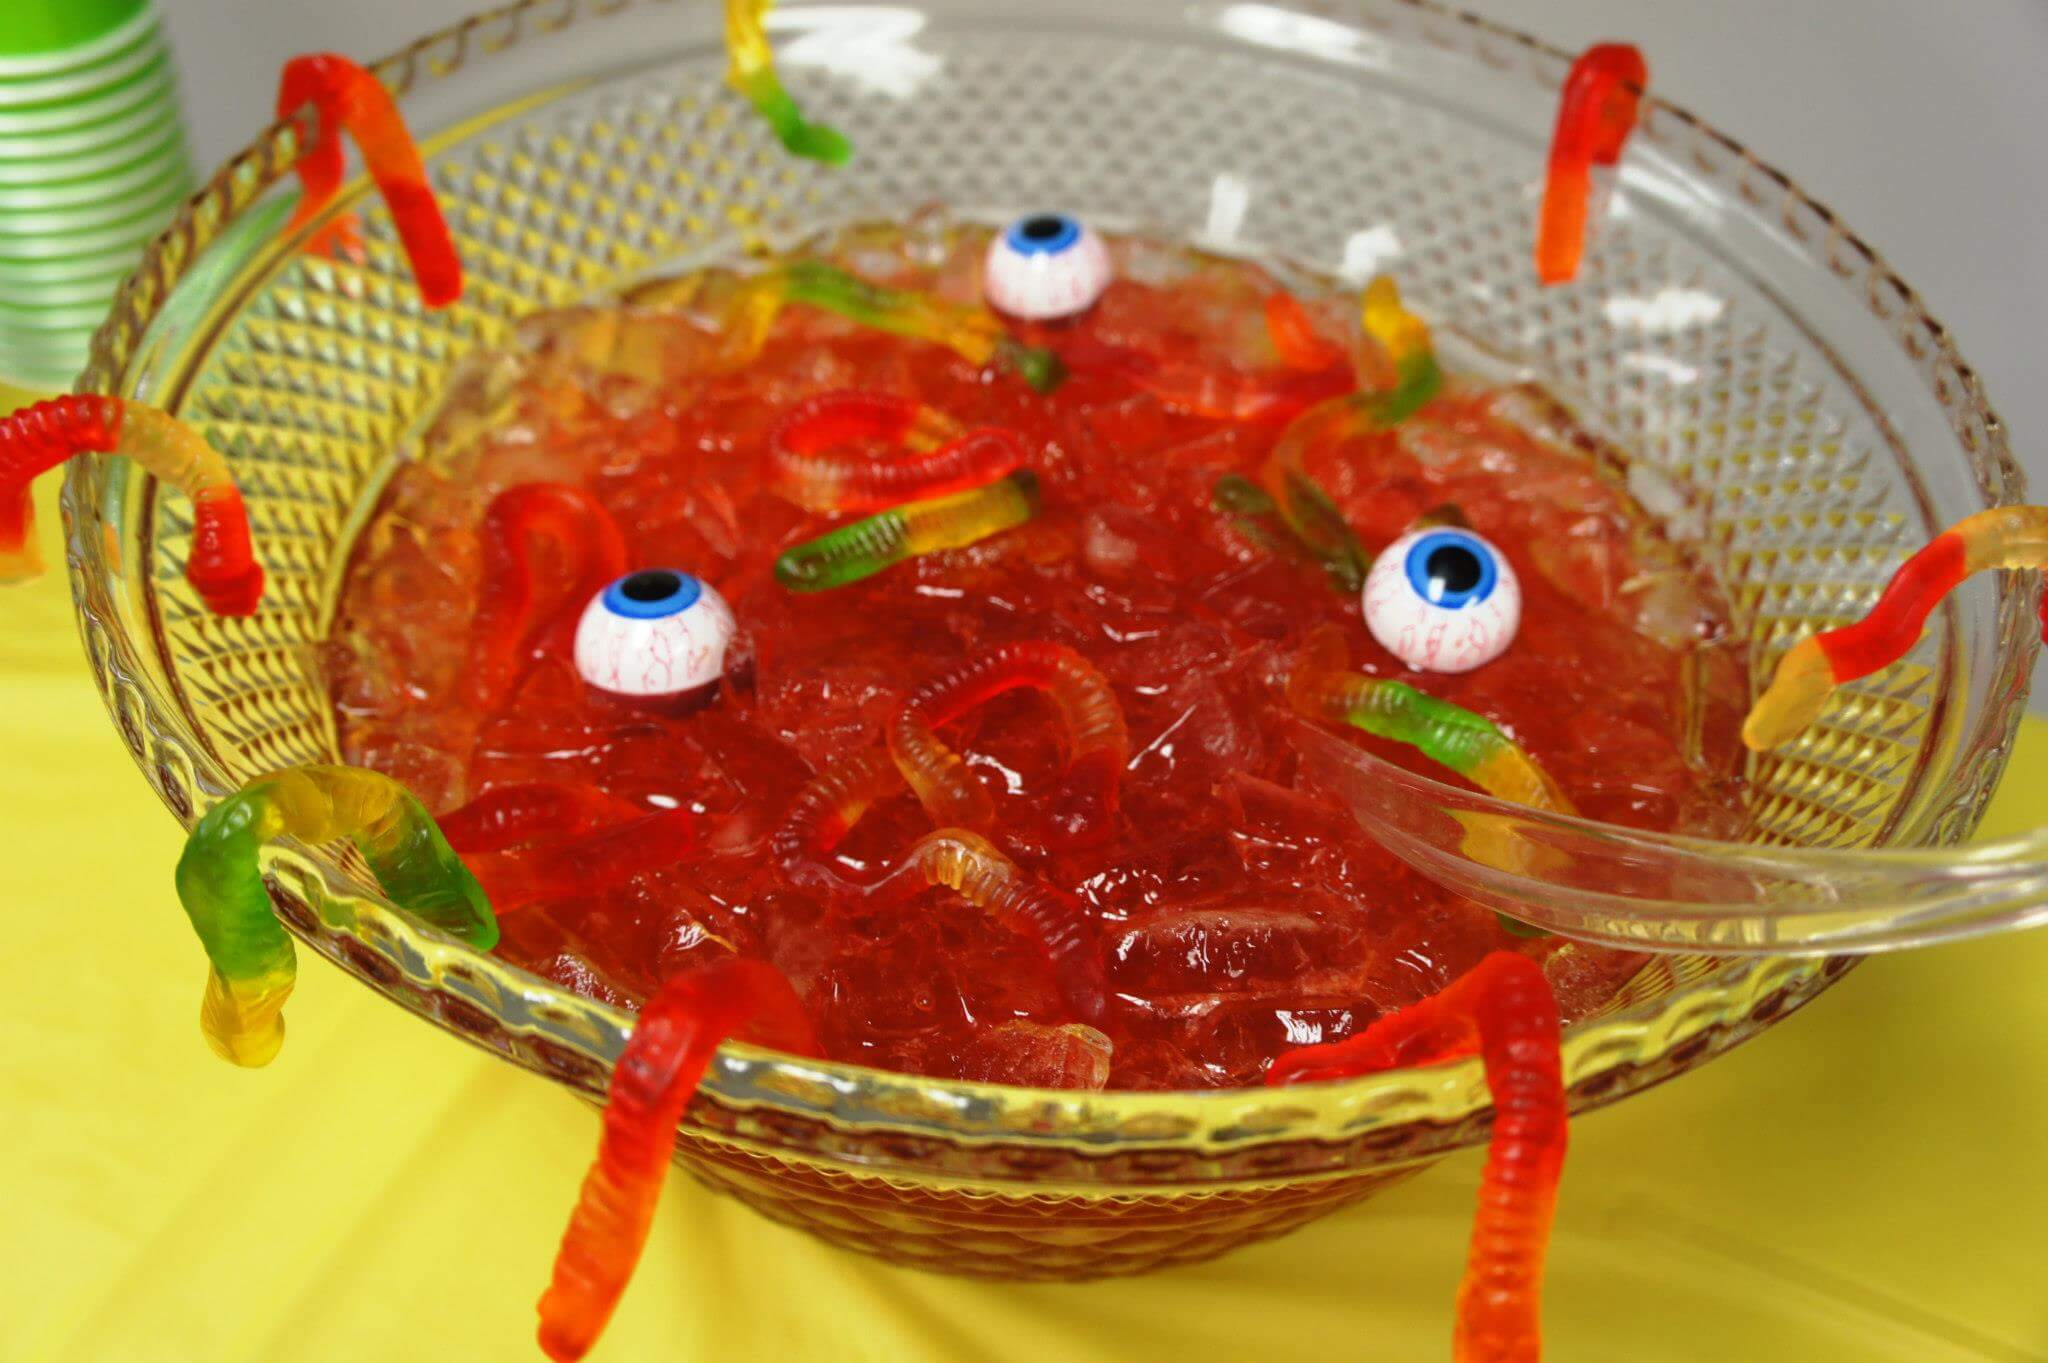 Creepy Halloween Punch with Floating Eye Balls Halloween food ideas